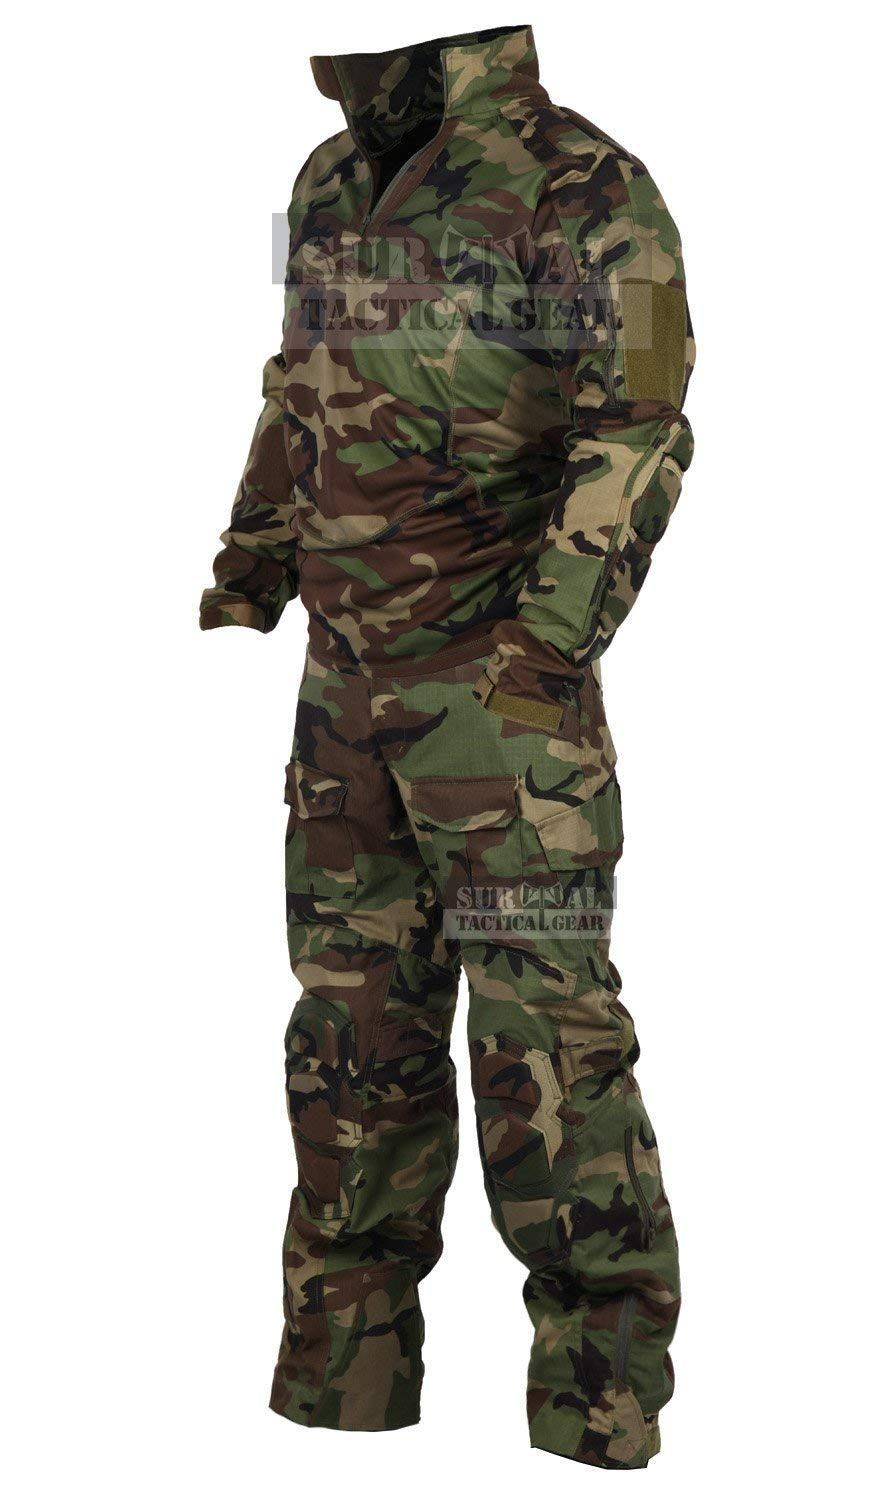 2d1946d0 Amazon.com : ZAPT Tactical Military Uniform Paintball Airsoft Hunting Army  Camo Apparel Shirt and Pants with Elbow Knee Pads Combat Clothing : Sports  & ...